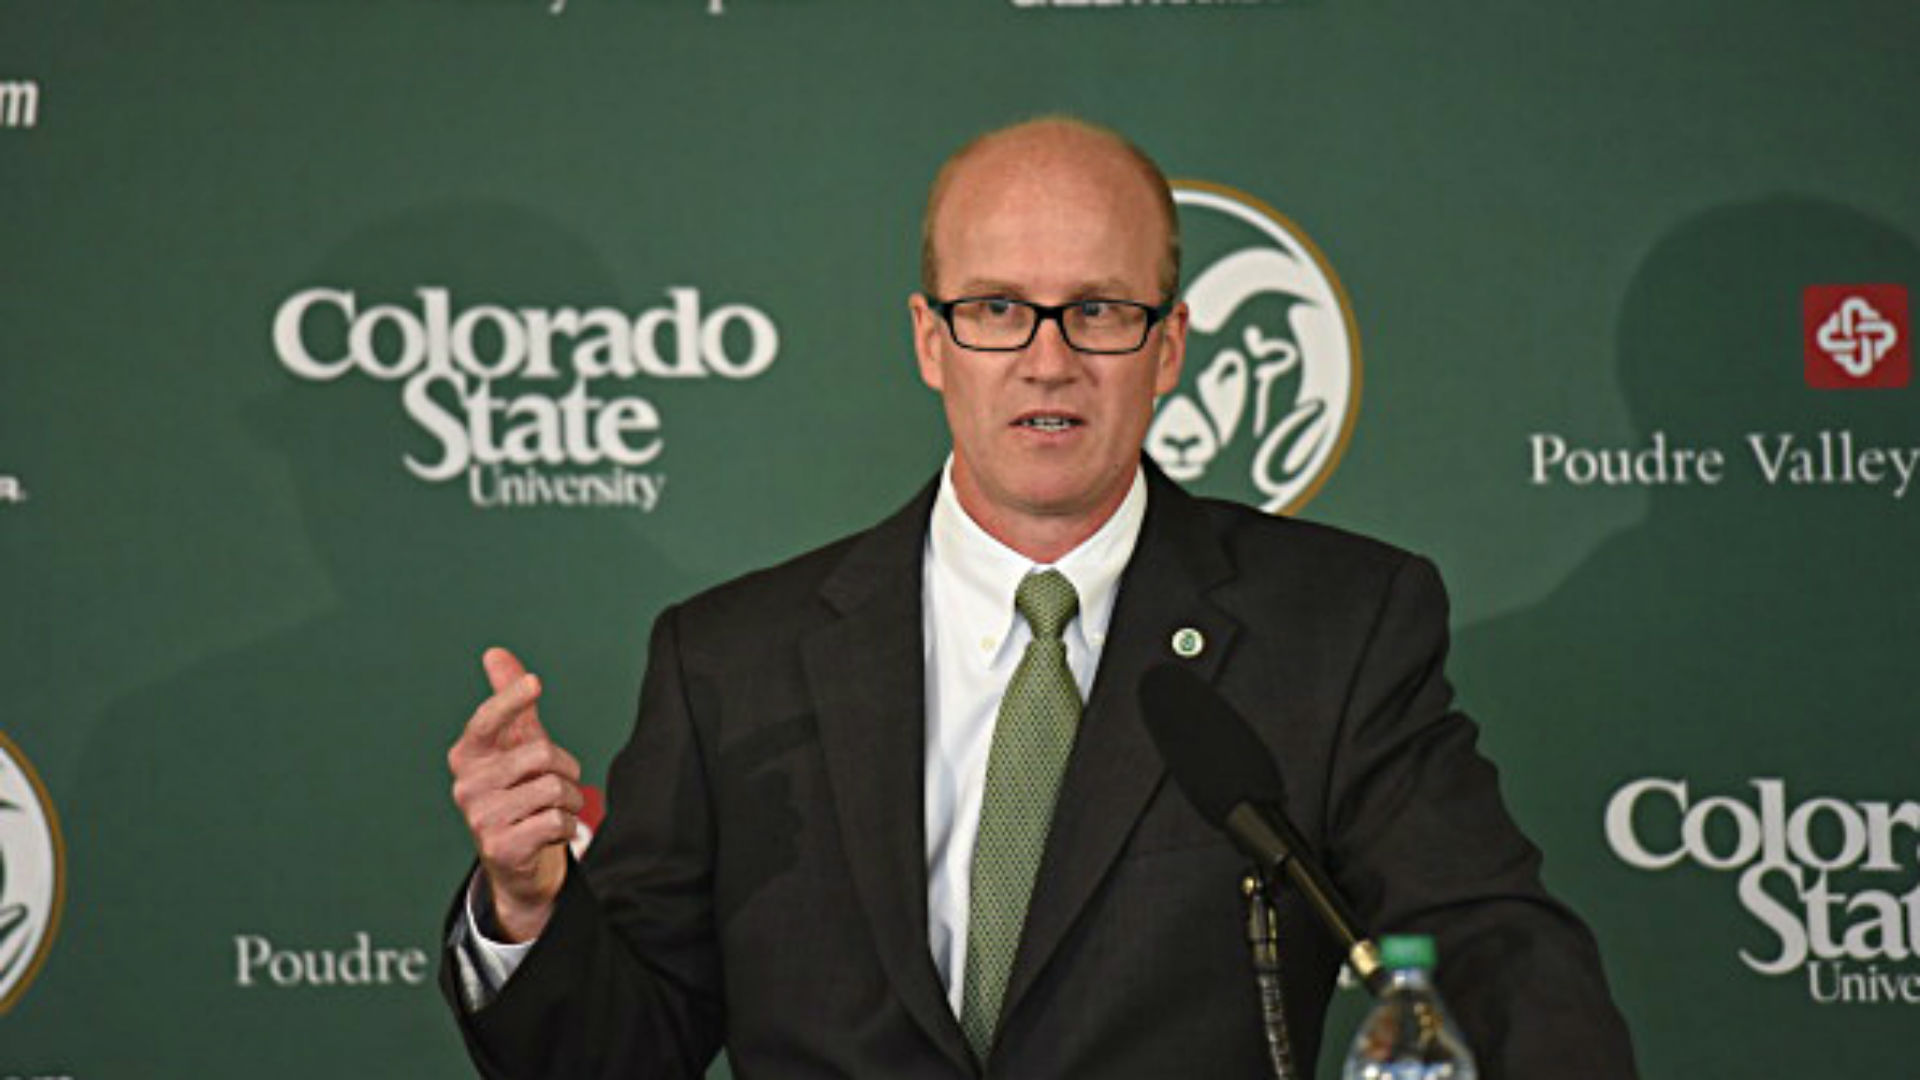 CSU's Athletic Director, Joe Parker, Talks Sports and Building the College Experience